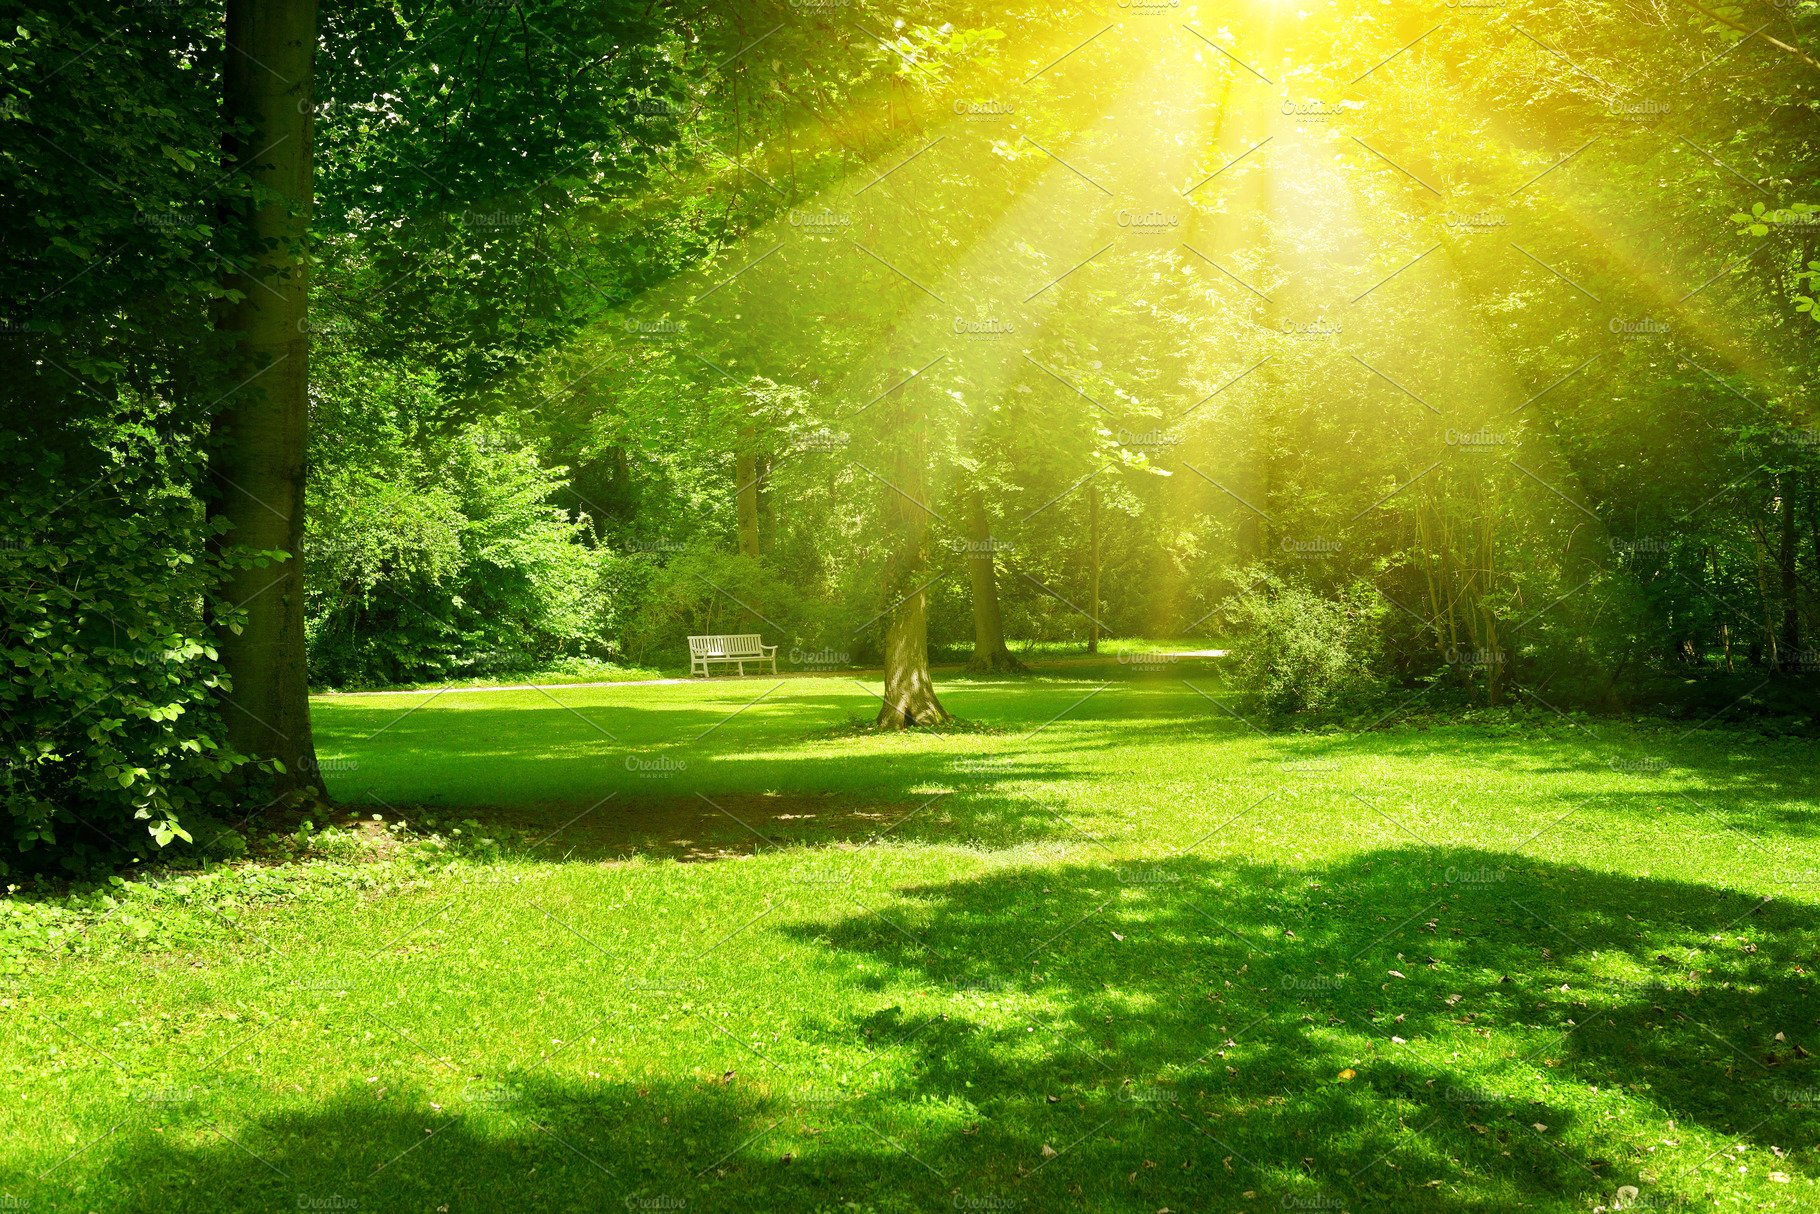 Bright sunny day in park. | High-Quality Nature Stock Photos ~ Creative Market